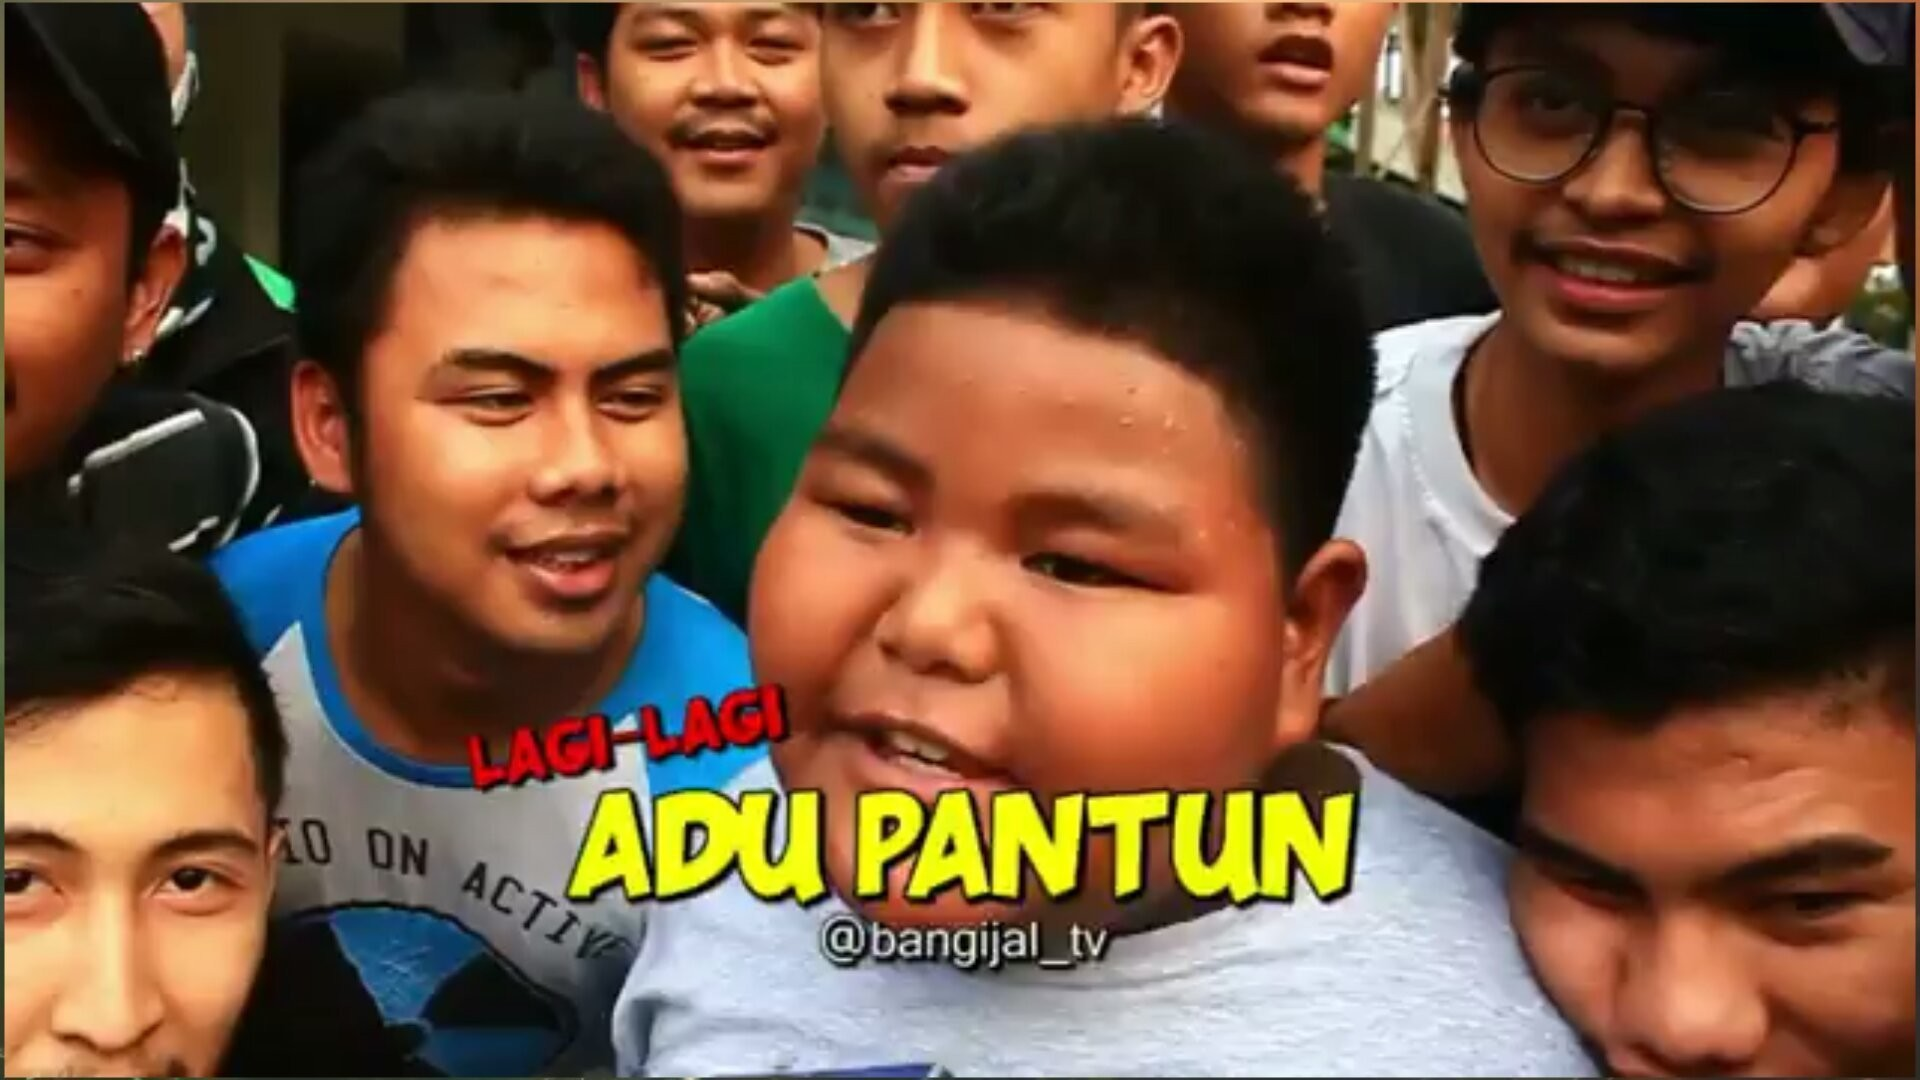 Video Lucu Adu Pantun Paling Ngakak Bang Ijal Tv